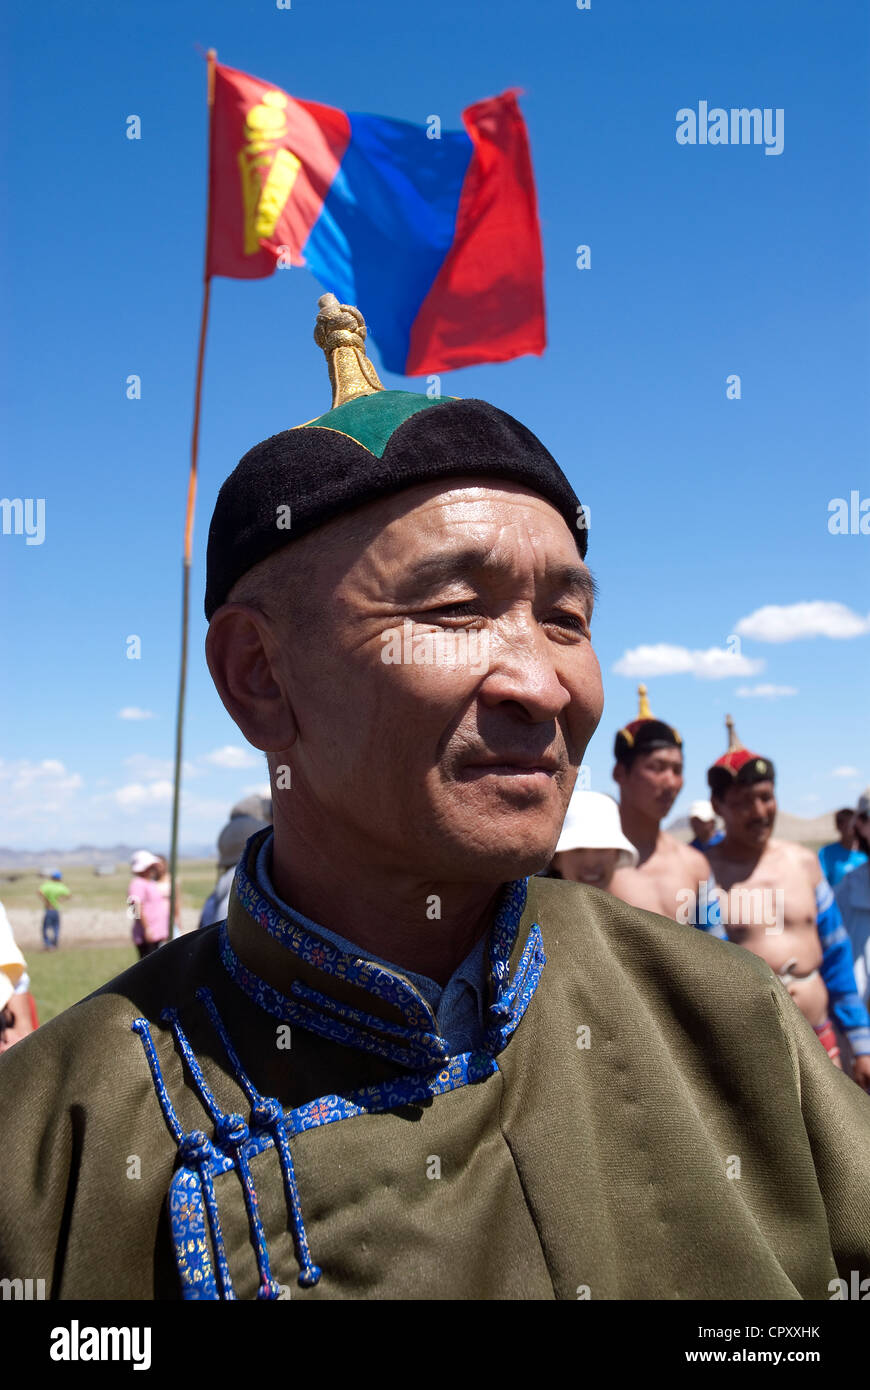 Mongolia, National Festival of Naadam, wrestlers in front of the Mongol flag - Stock Image